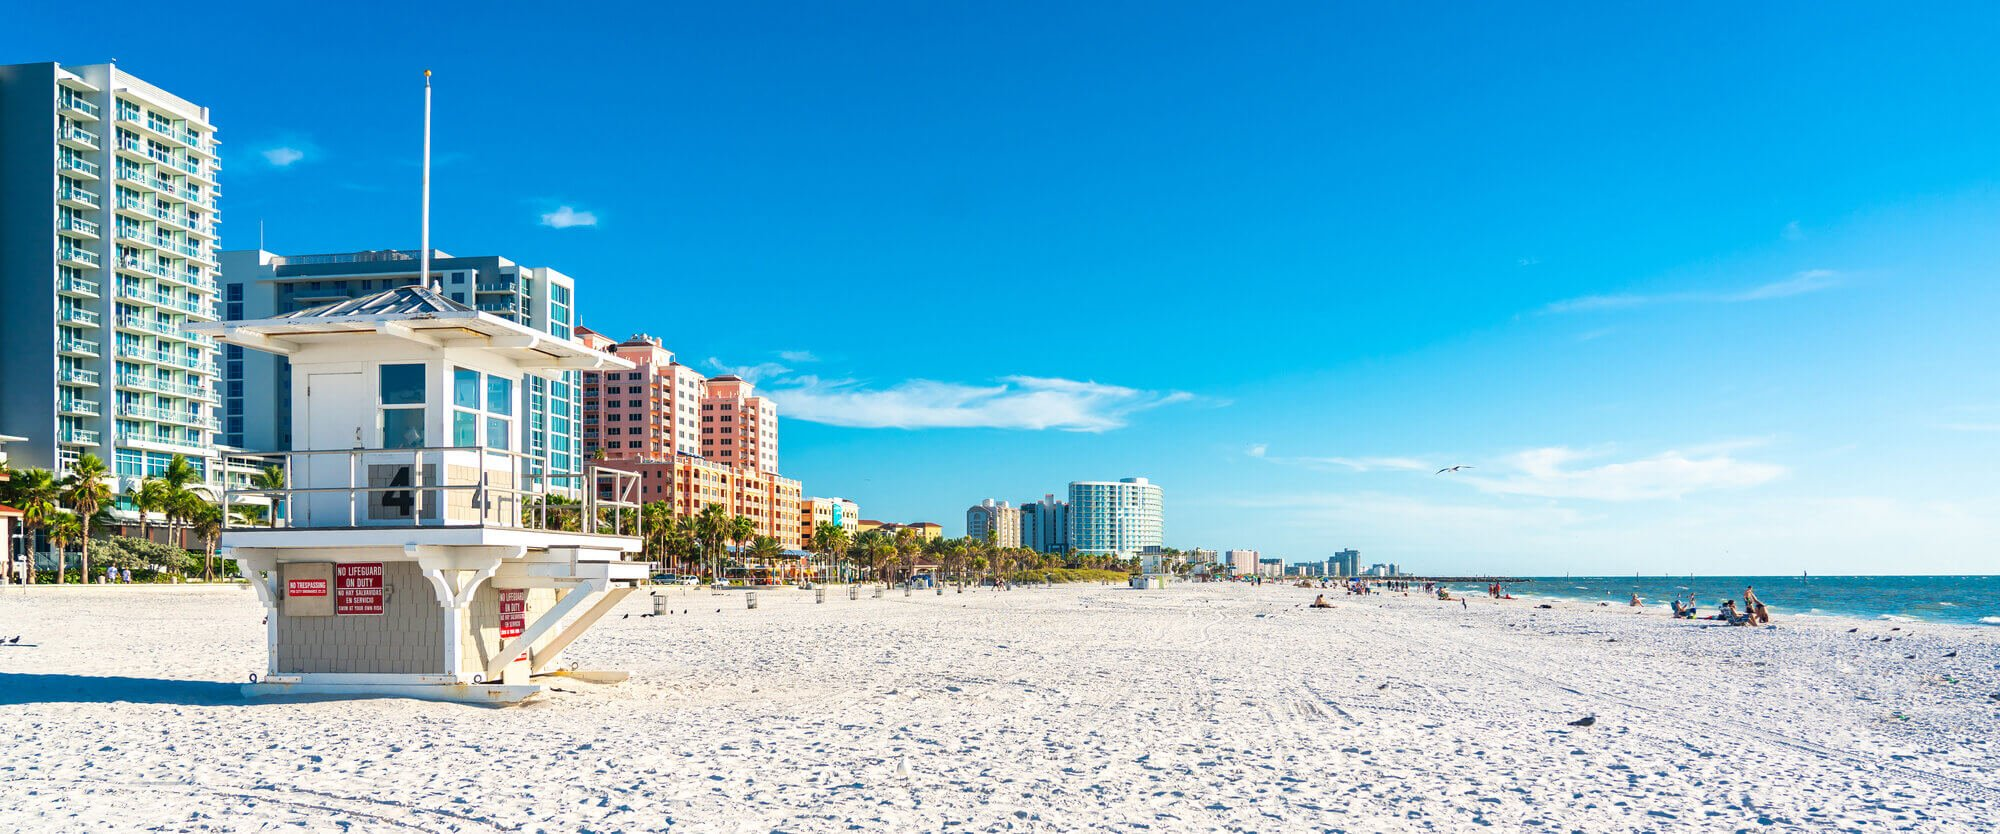 Discover all the best things to do in Clearwater!